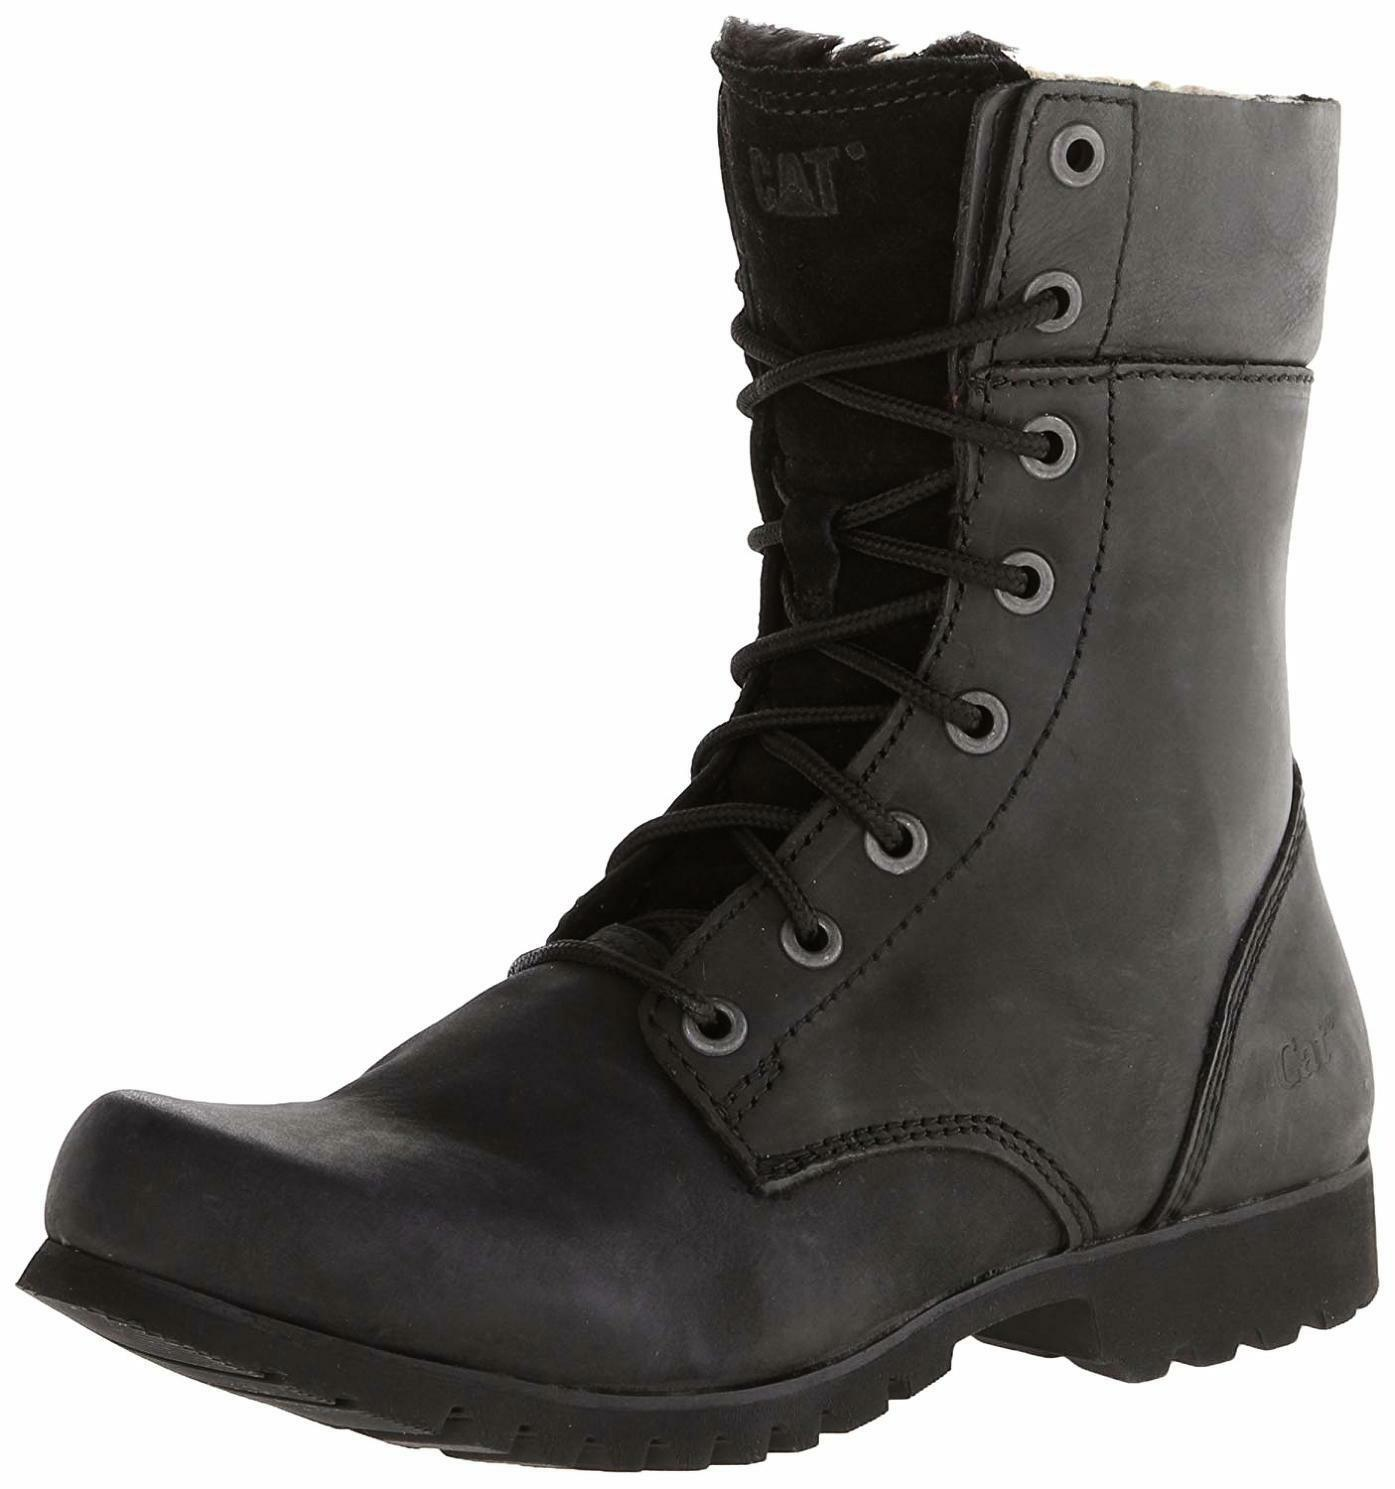 Caterpillar Caterpillar Caterpillar Women's Alexi Combat Boot - Choose SZ color ce4488